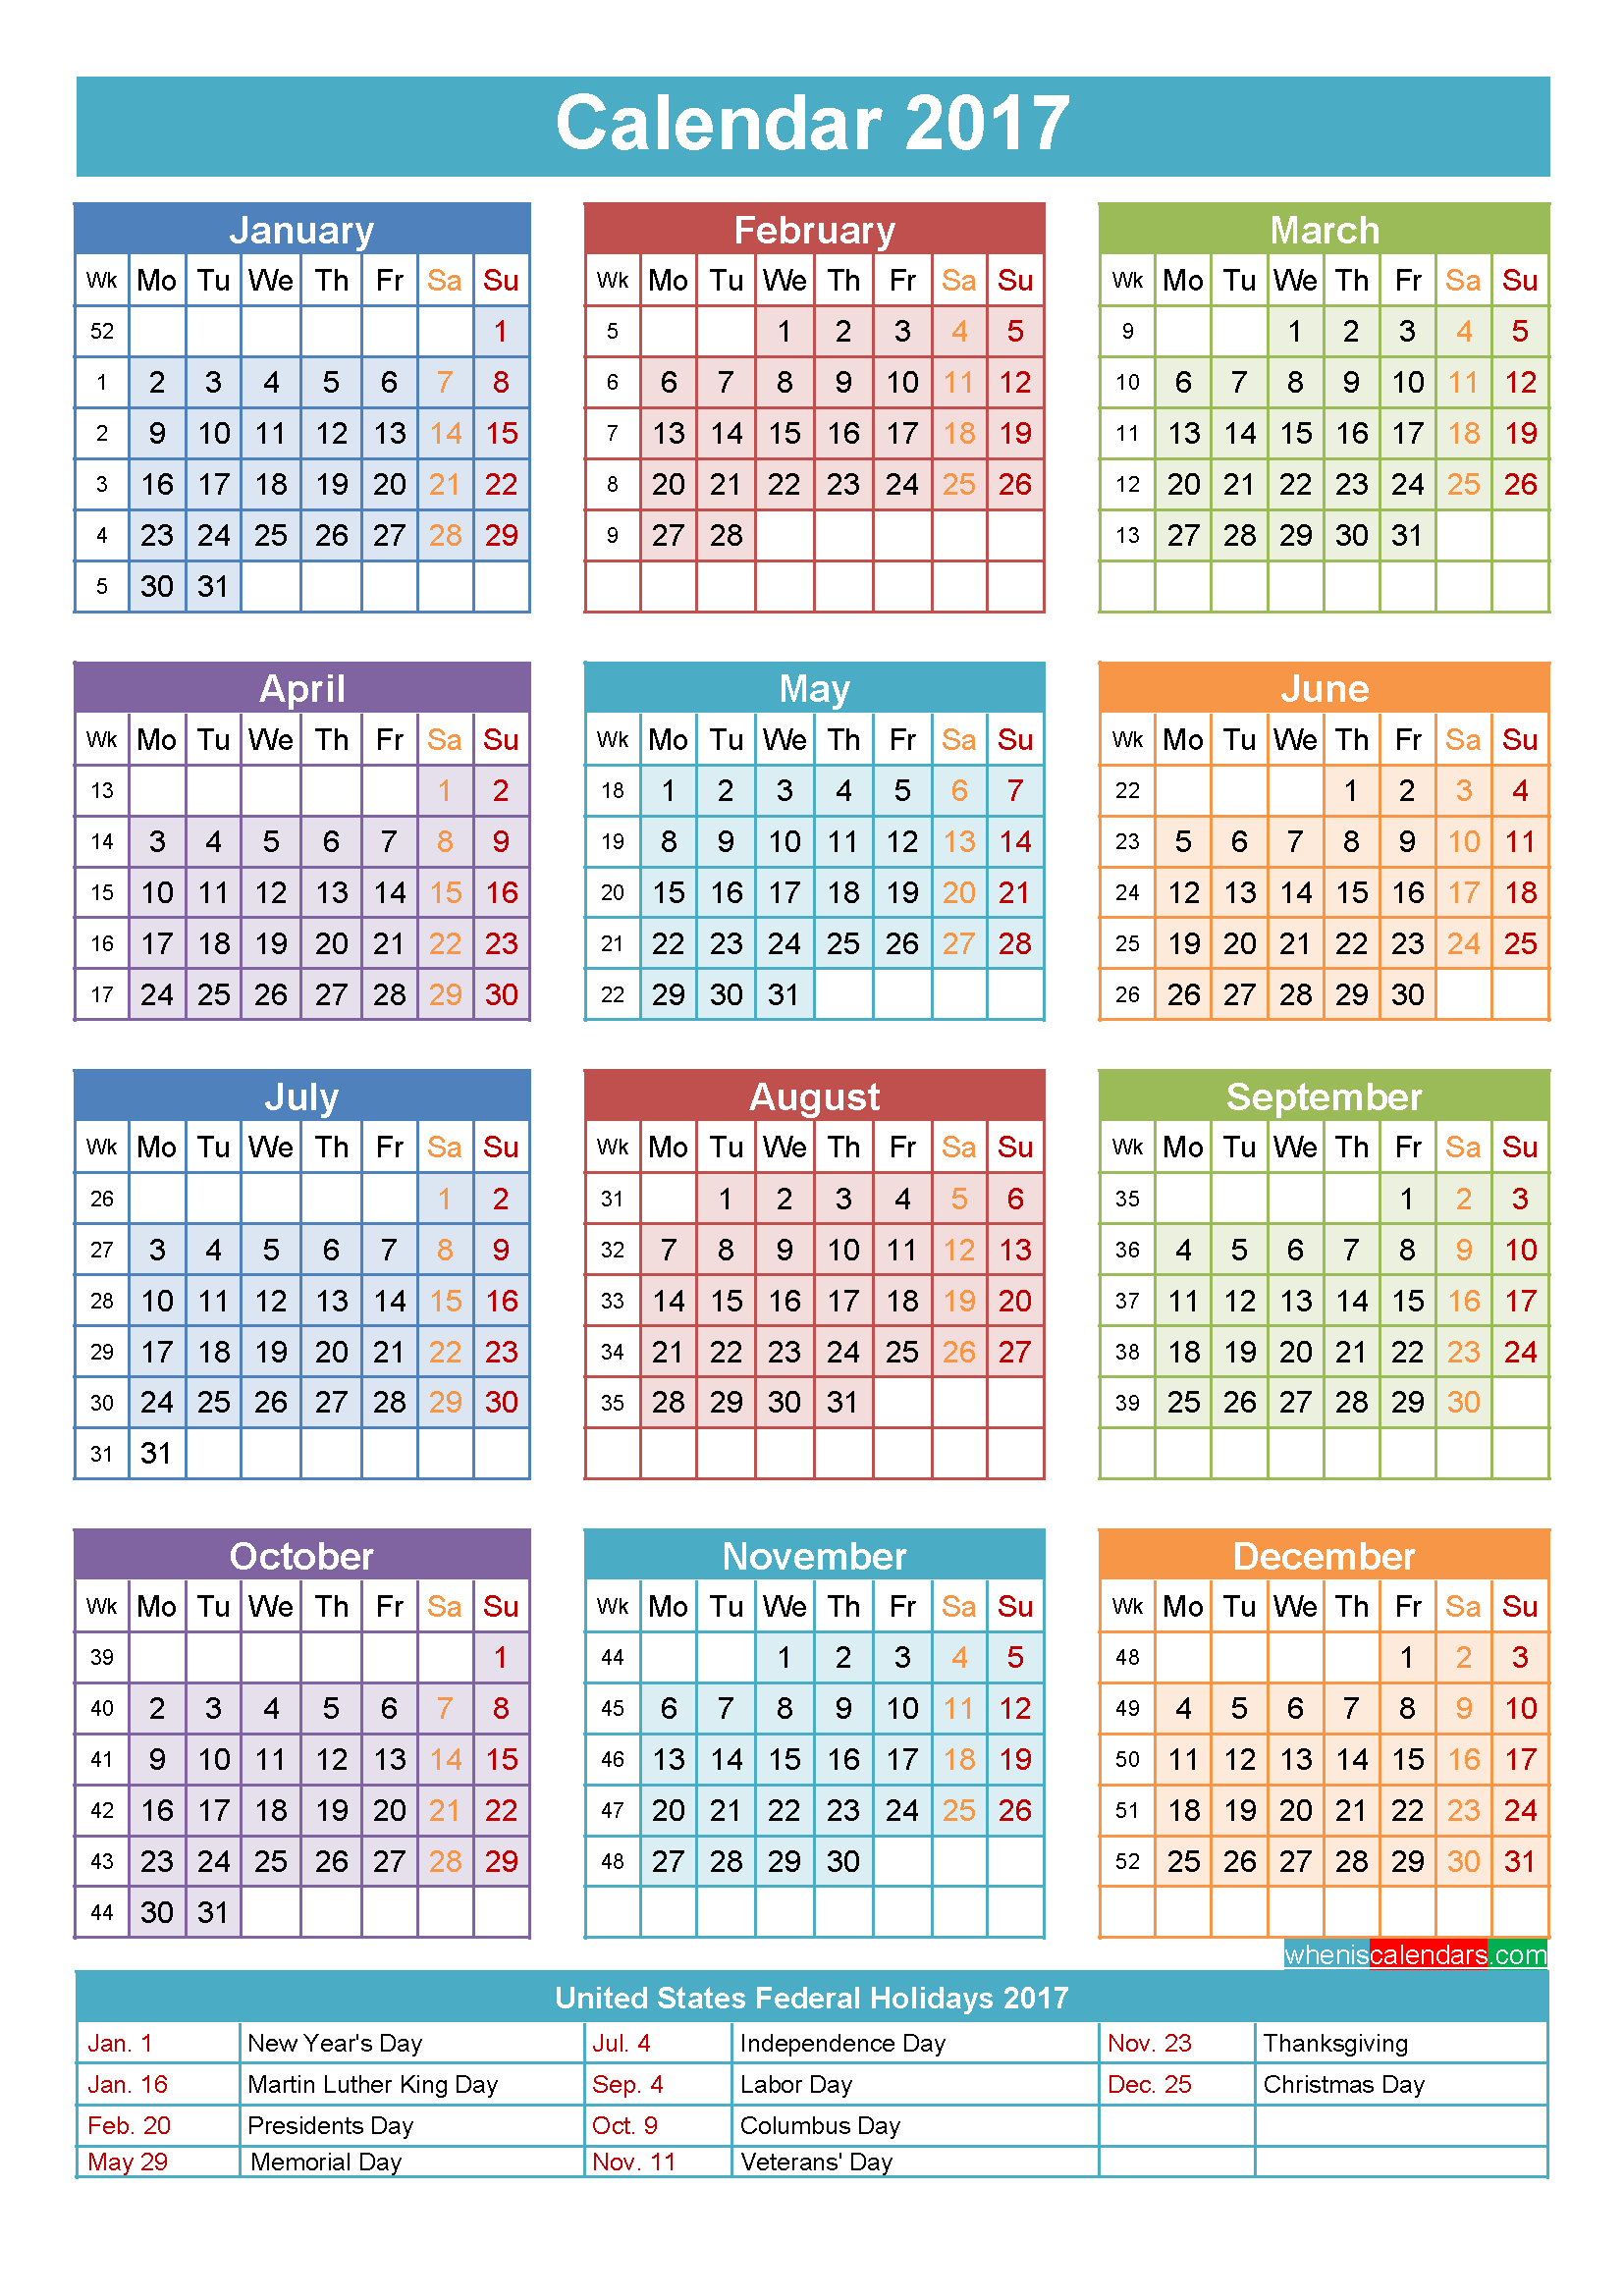 Calendar Templates With Holidays : Calendar with holidays printable yearly